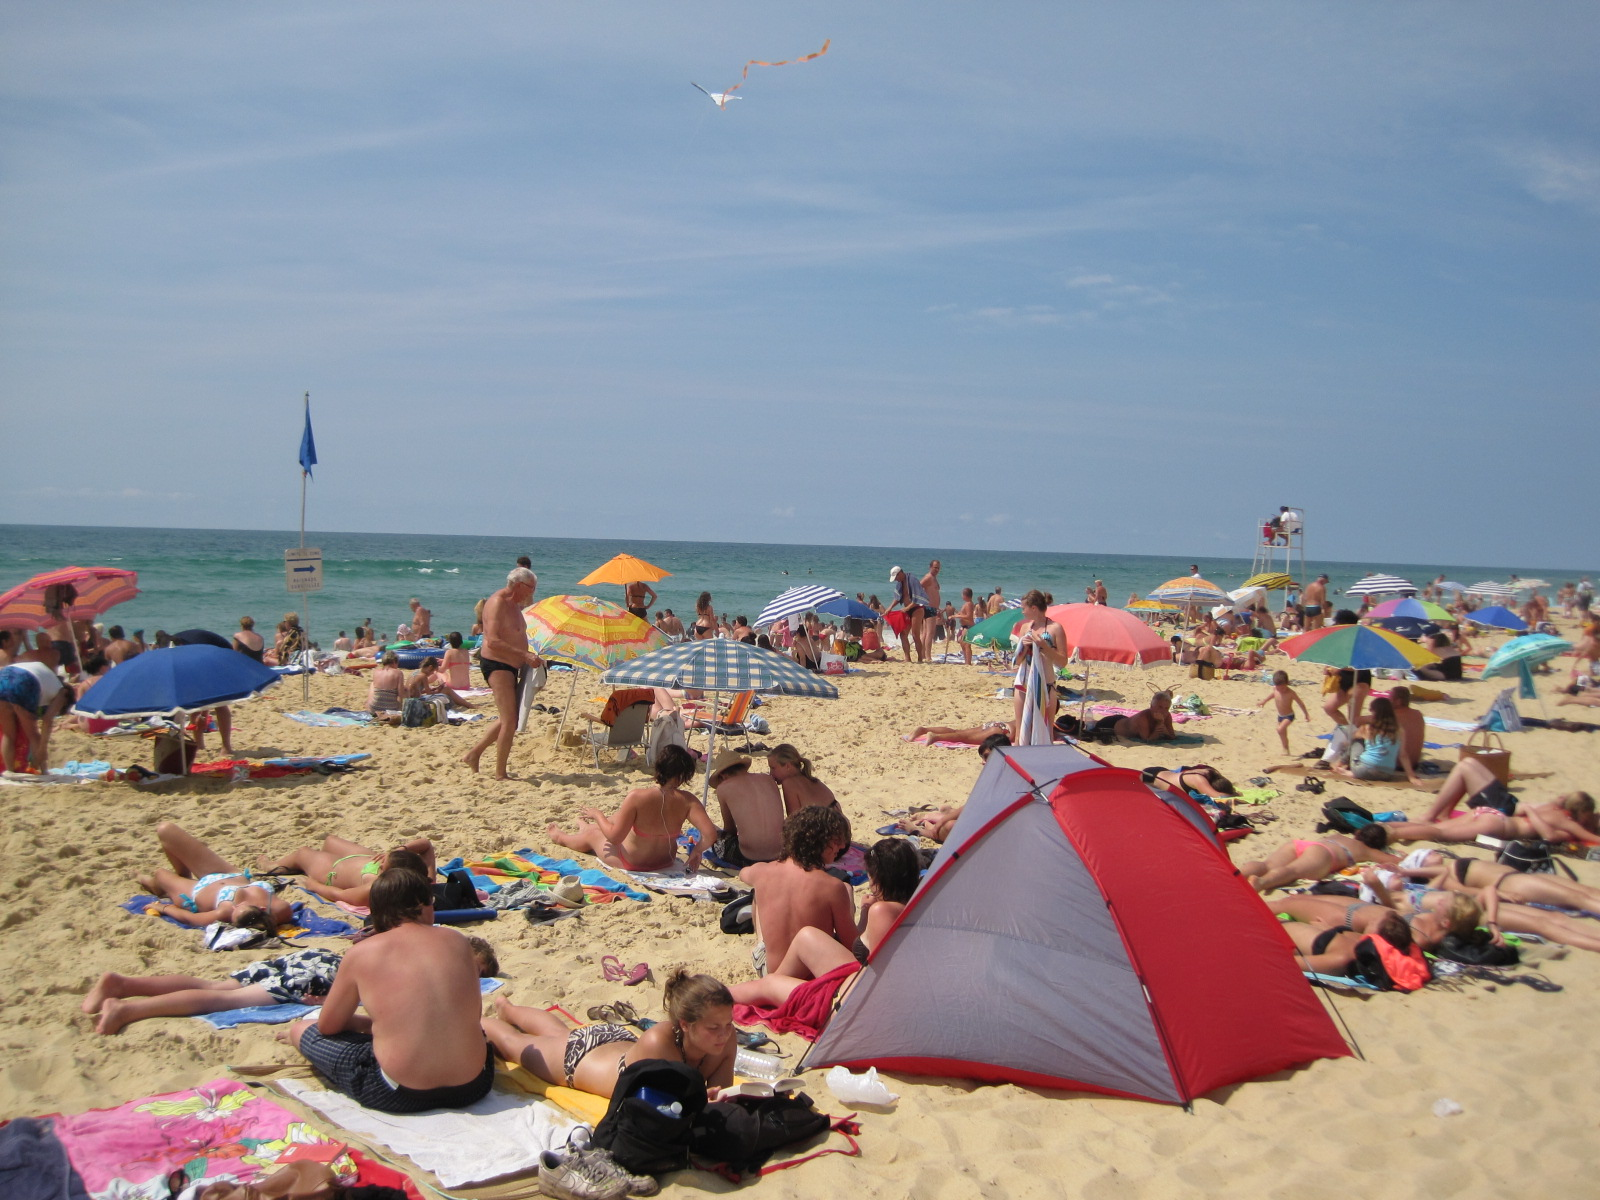 beaches get crowded during summer vacation